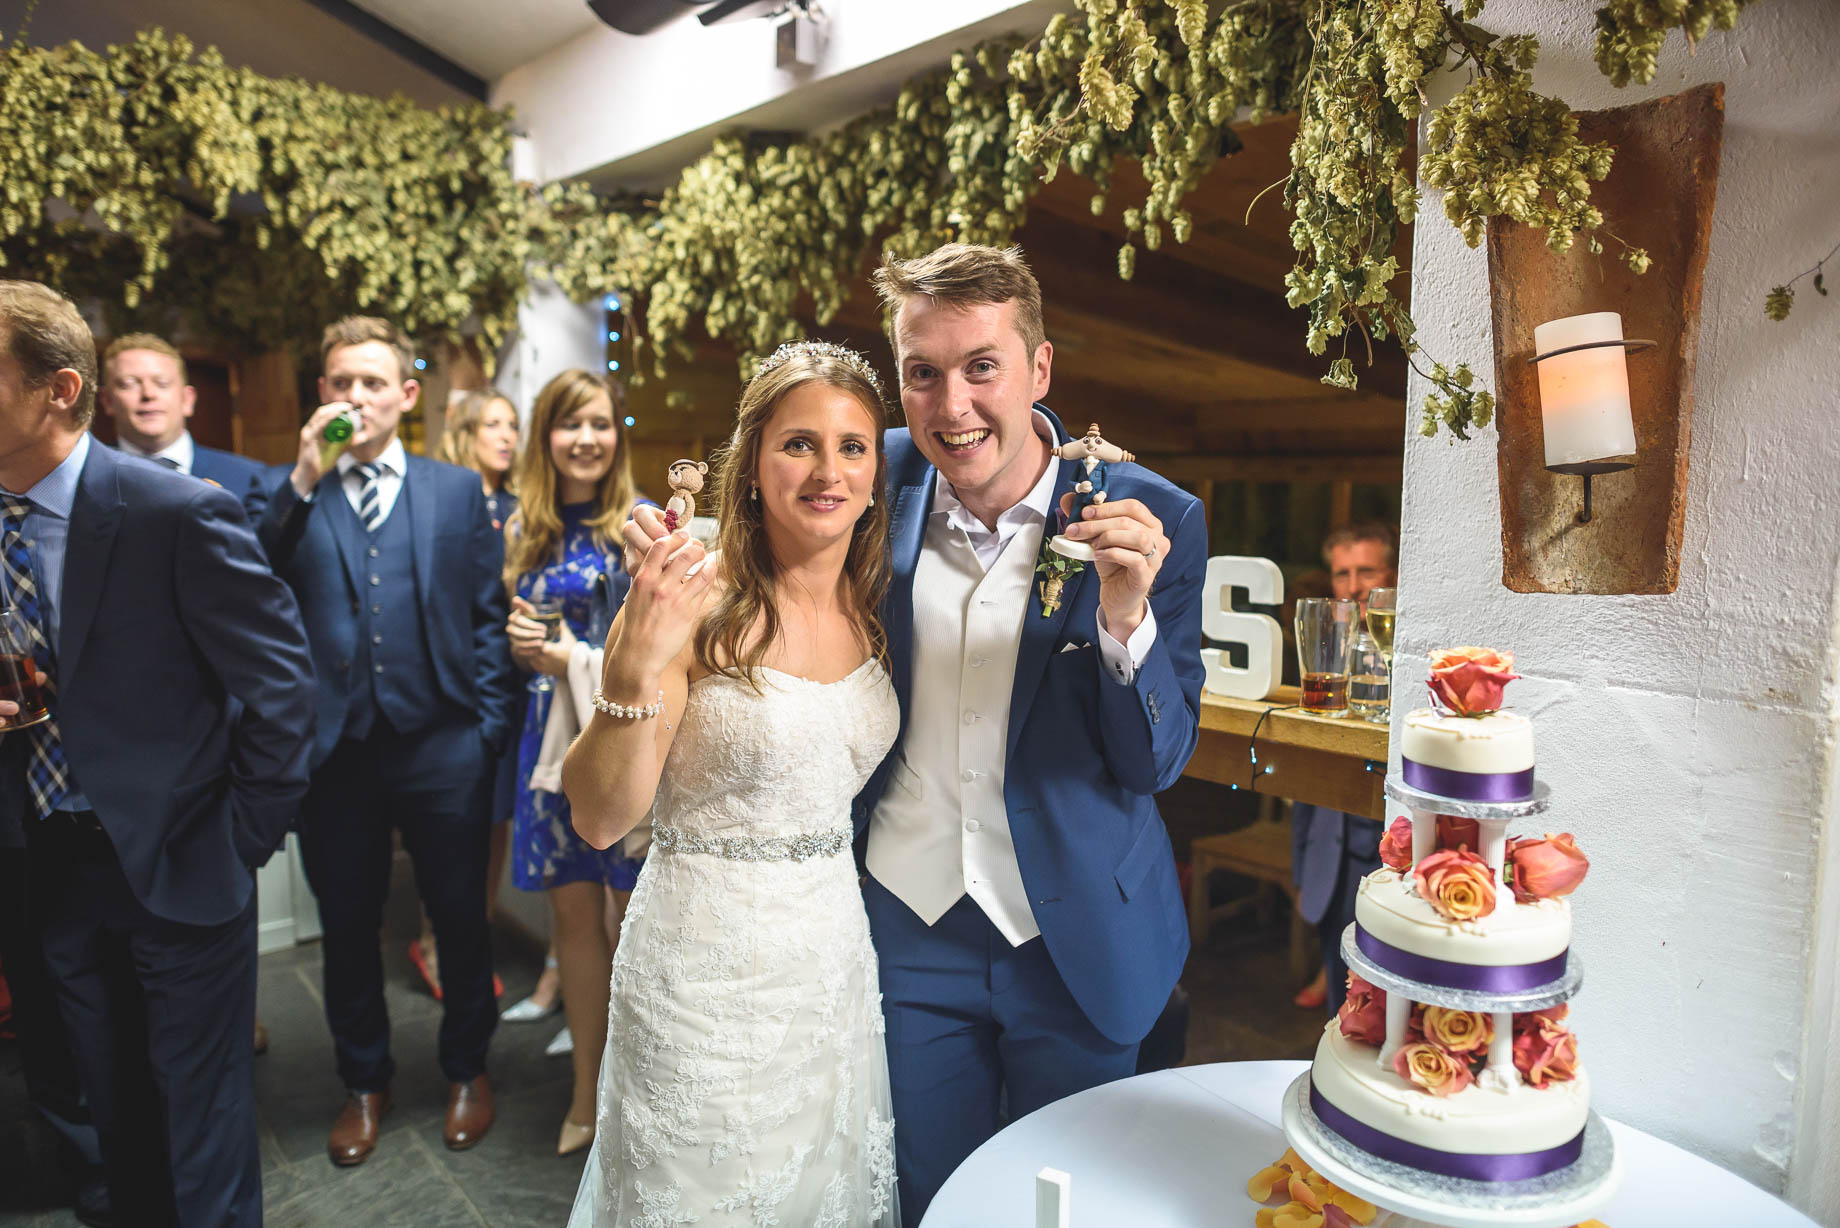 Gate Street Barn wedding photography - Guy Collier - Claire and Andy (180 of 192)